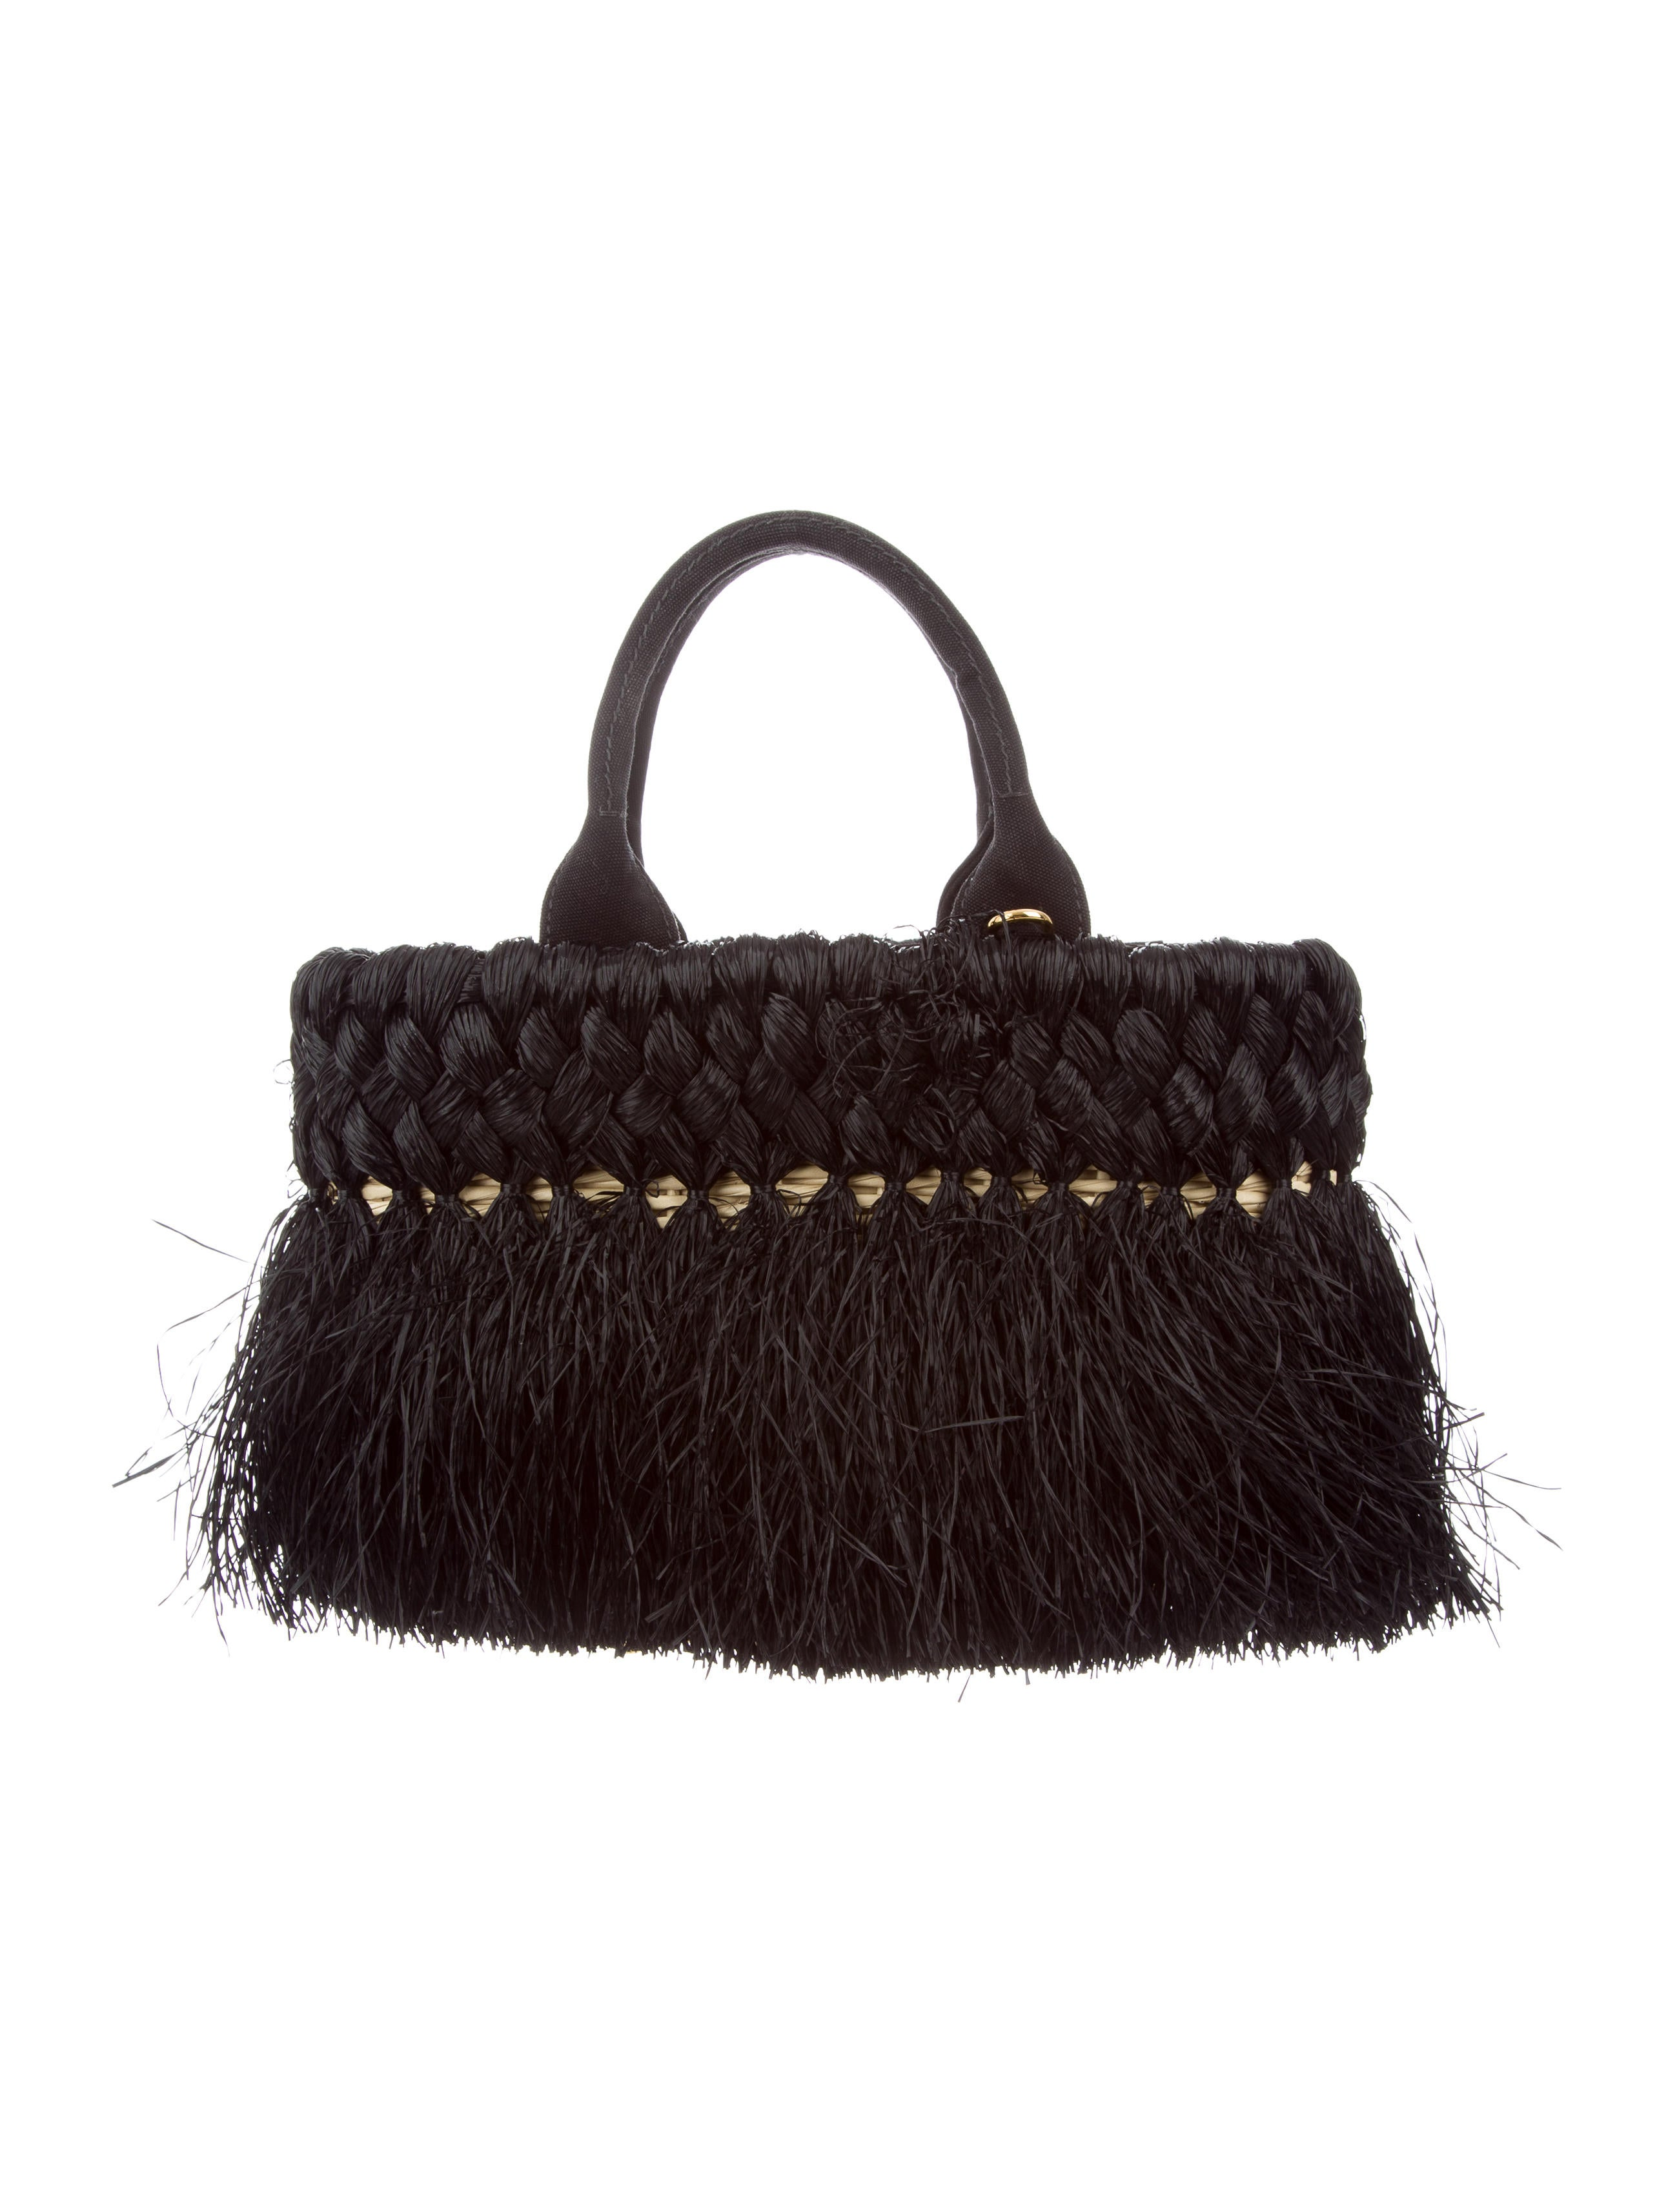 2ec133c9e1ff ... order women handbags prada fringed raffia satchel. fringed raffia  satchel 72802 57721 sale prada bicolor leather sound bag the real ...